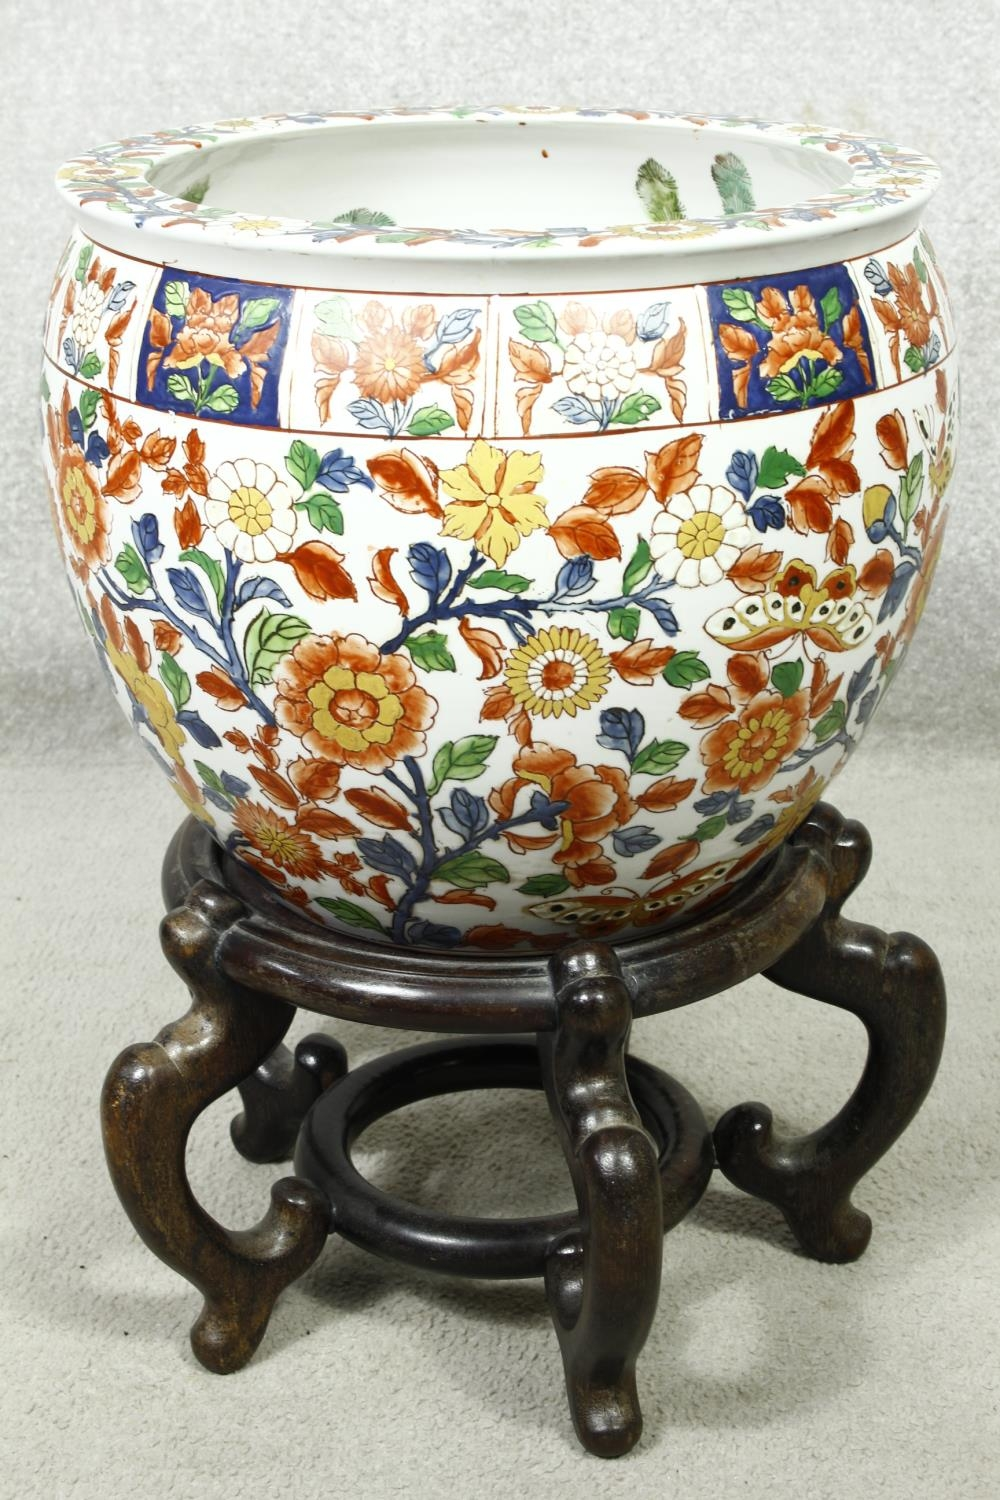 A pair of early 20th century glazed Chinese Imari ceramic planters/fish bowls on carved hardwood - Image 4 of 11